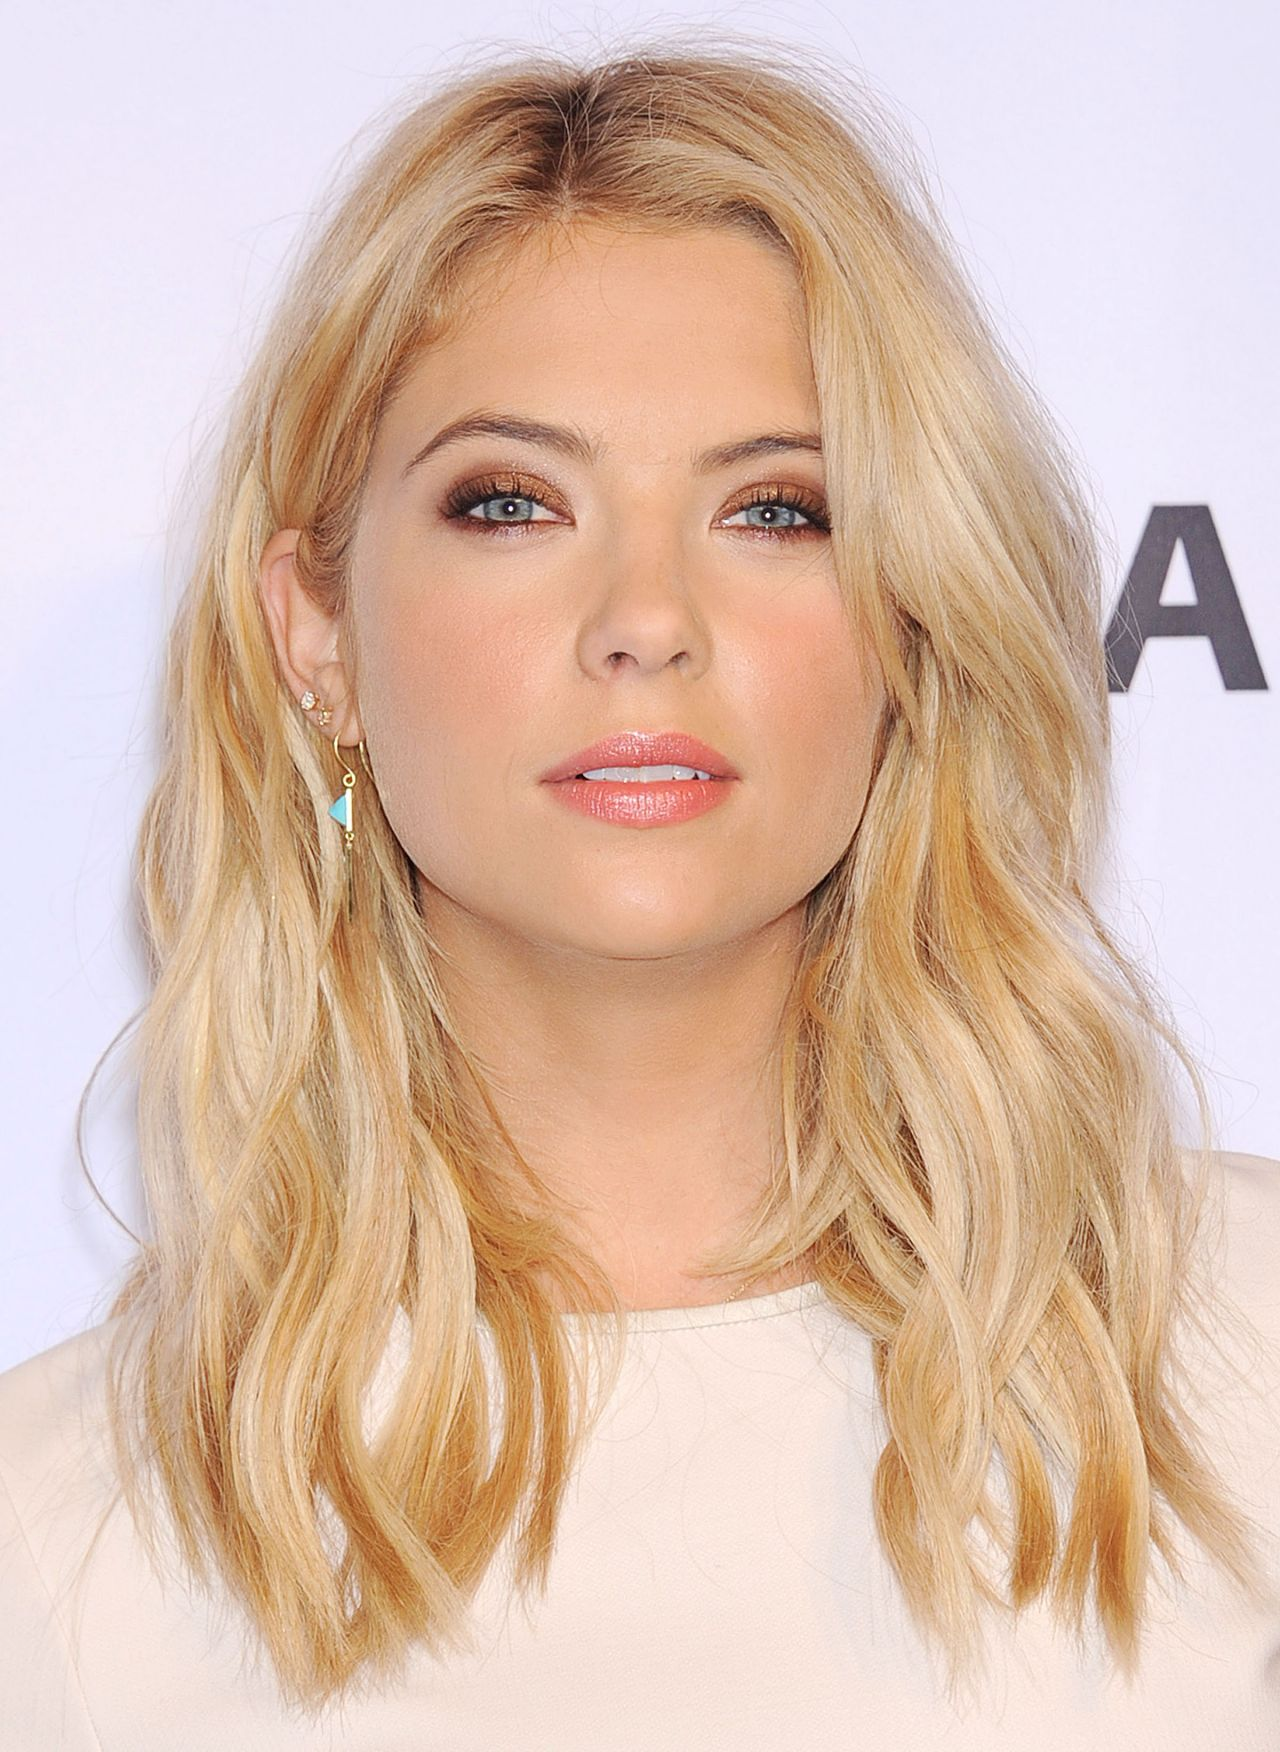 Ashley Benson Wearing Alberta Ferretti Peplum Short Dress